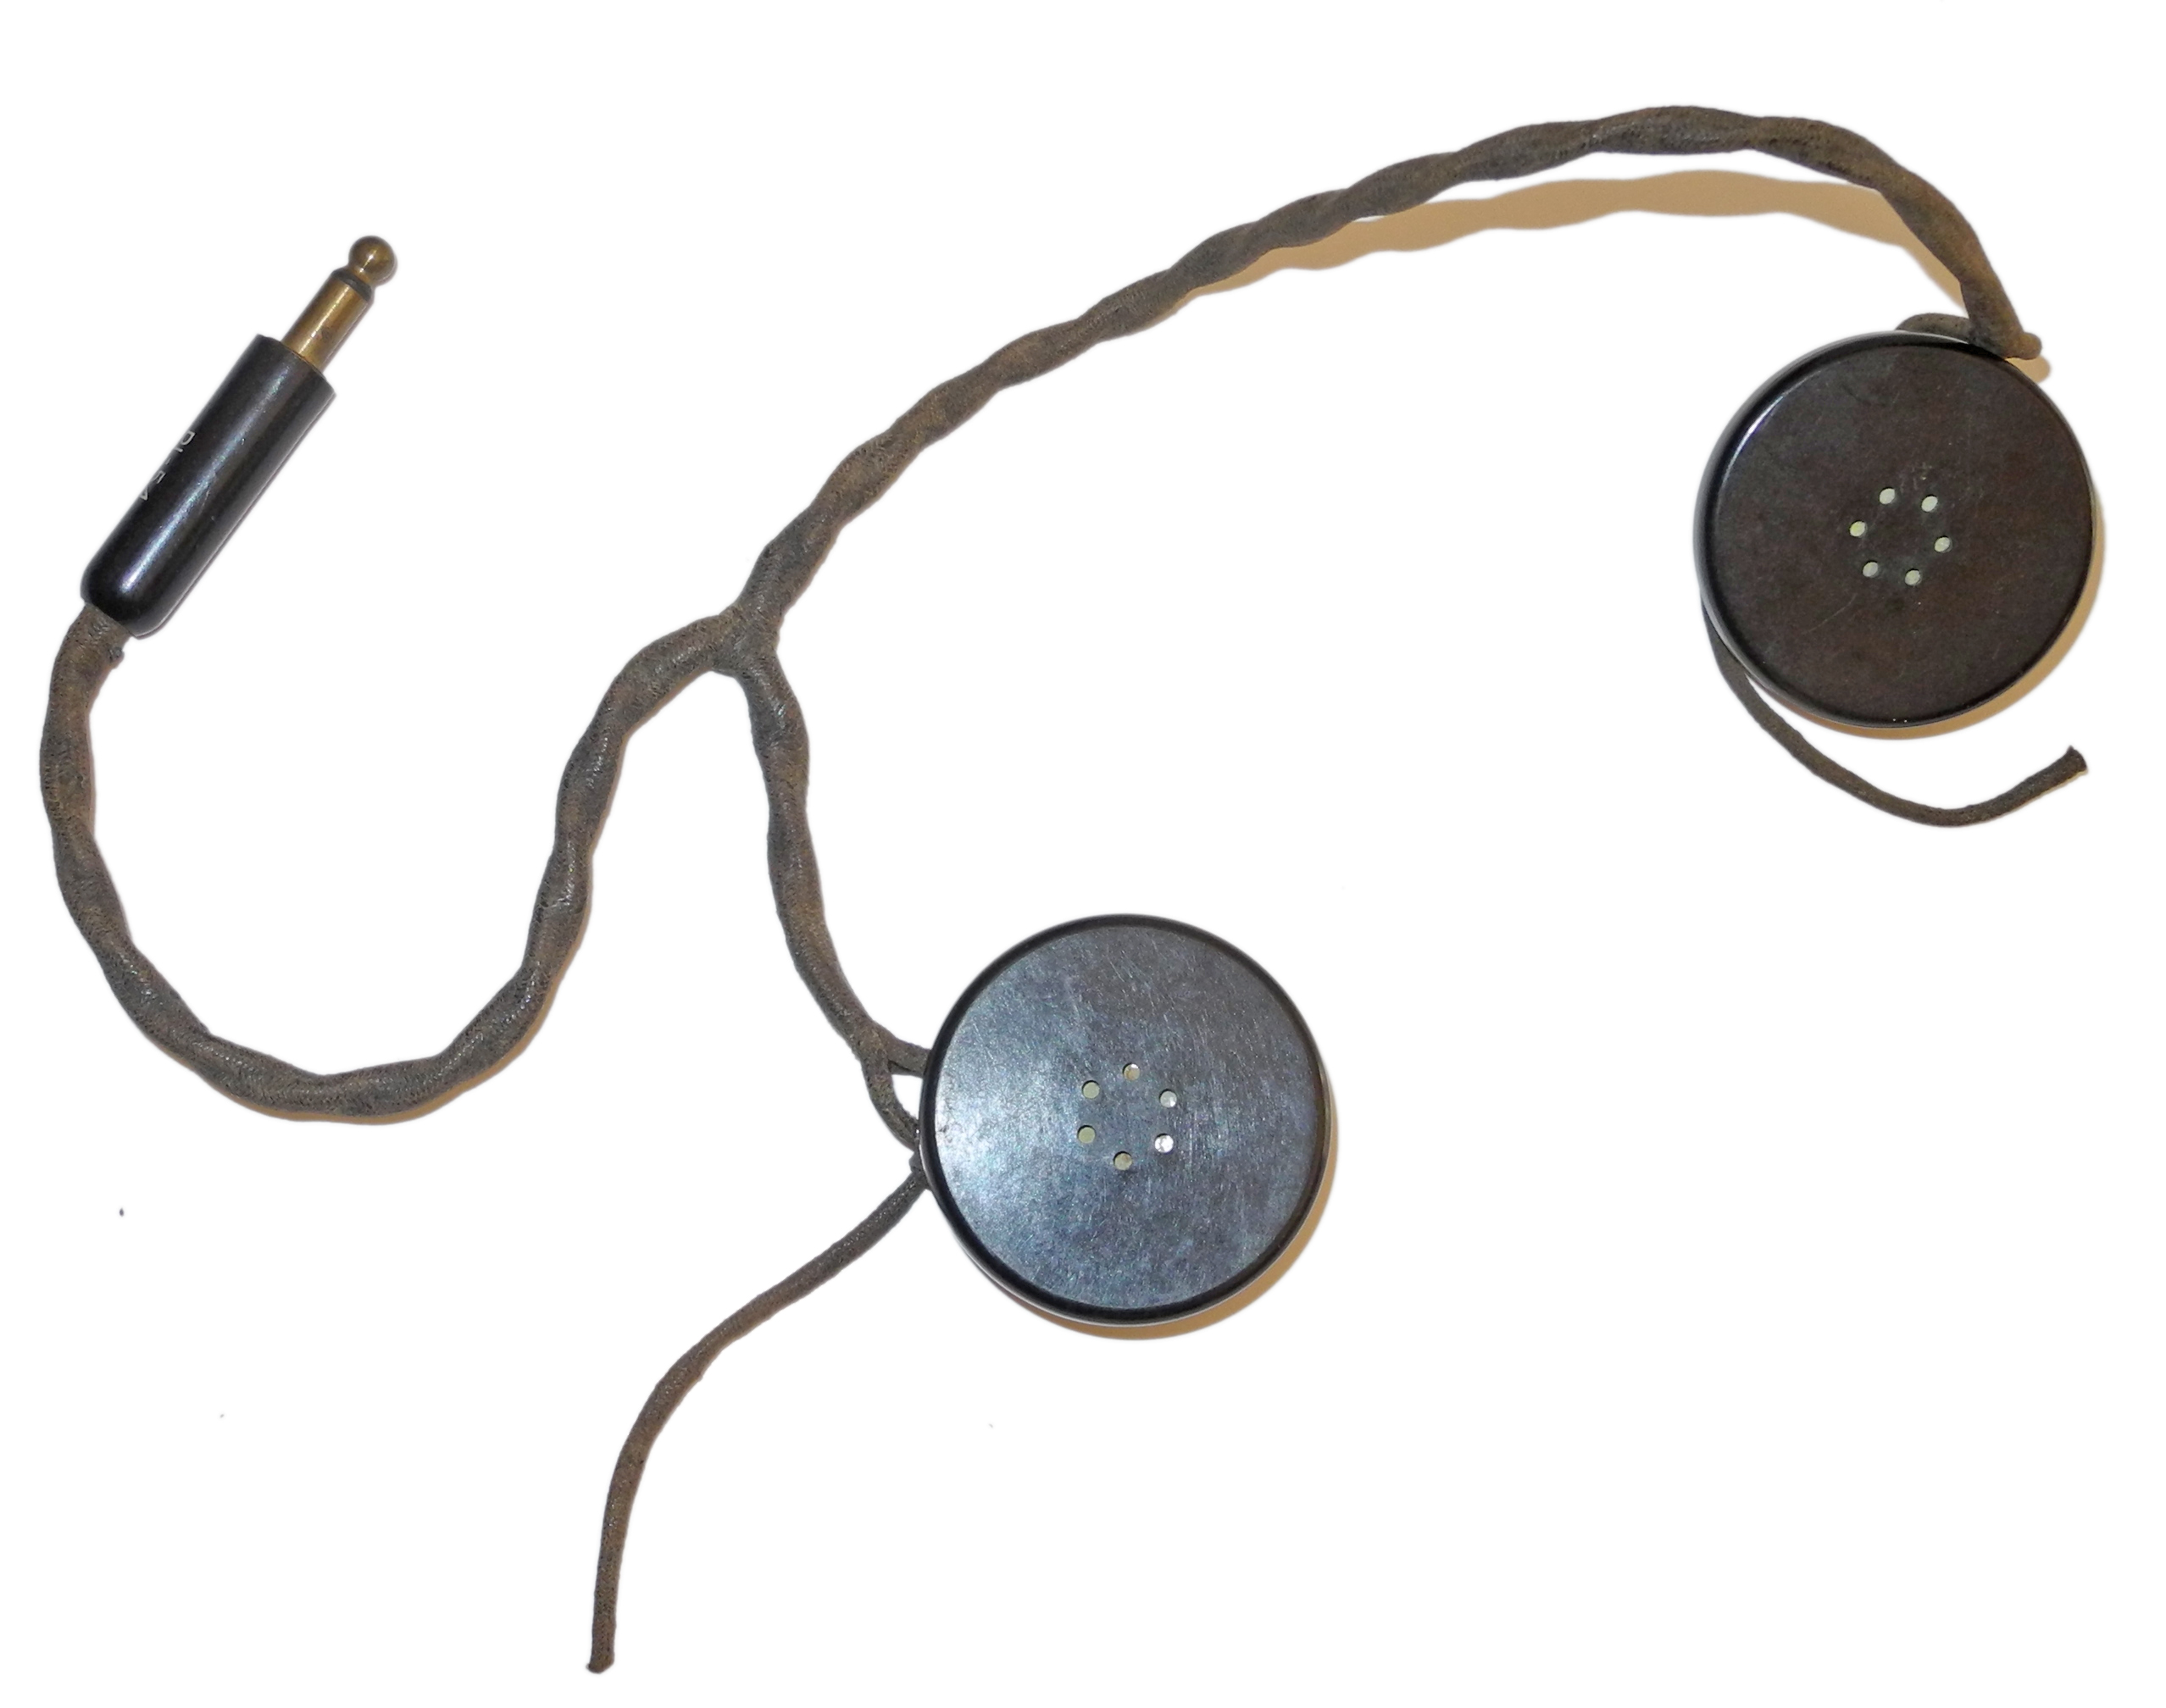 HS-18 headset for early AAF flying helmets